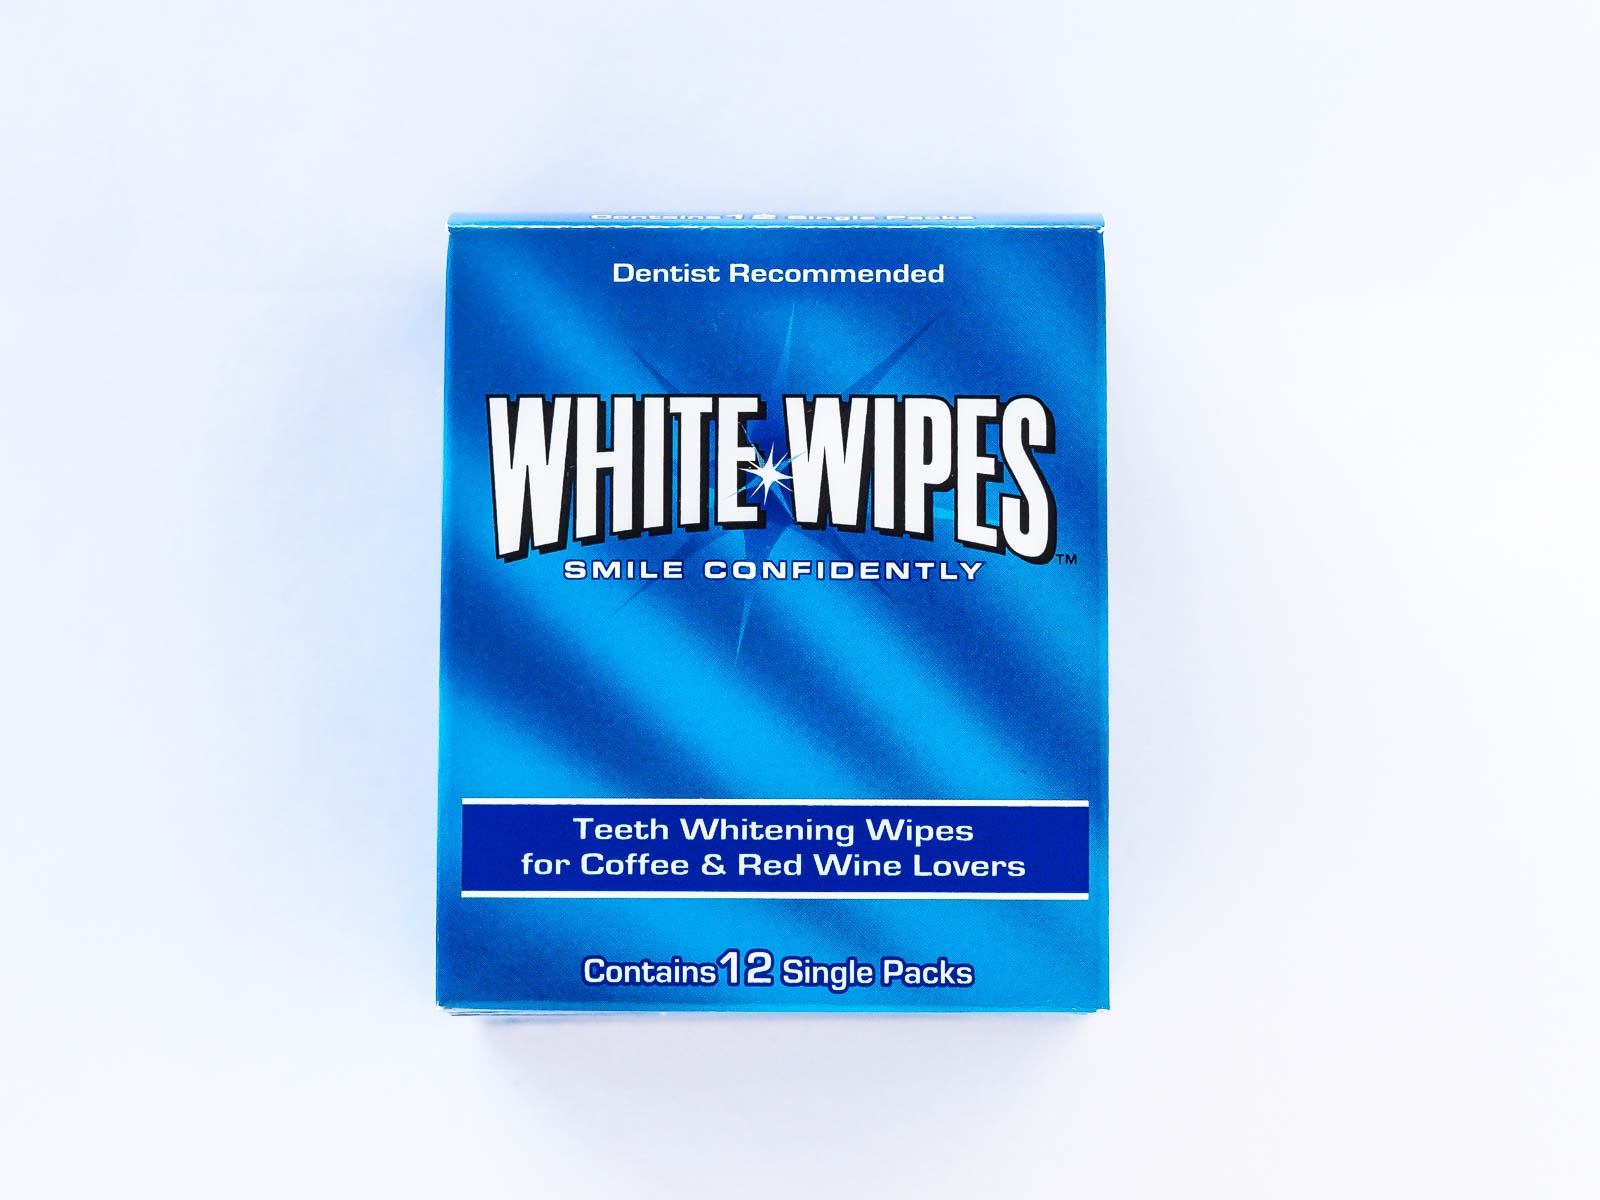 White Wipes3-1.jpg